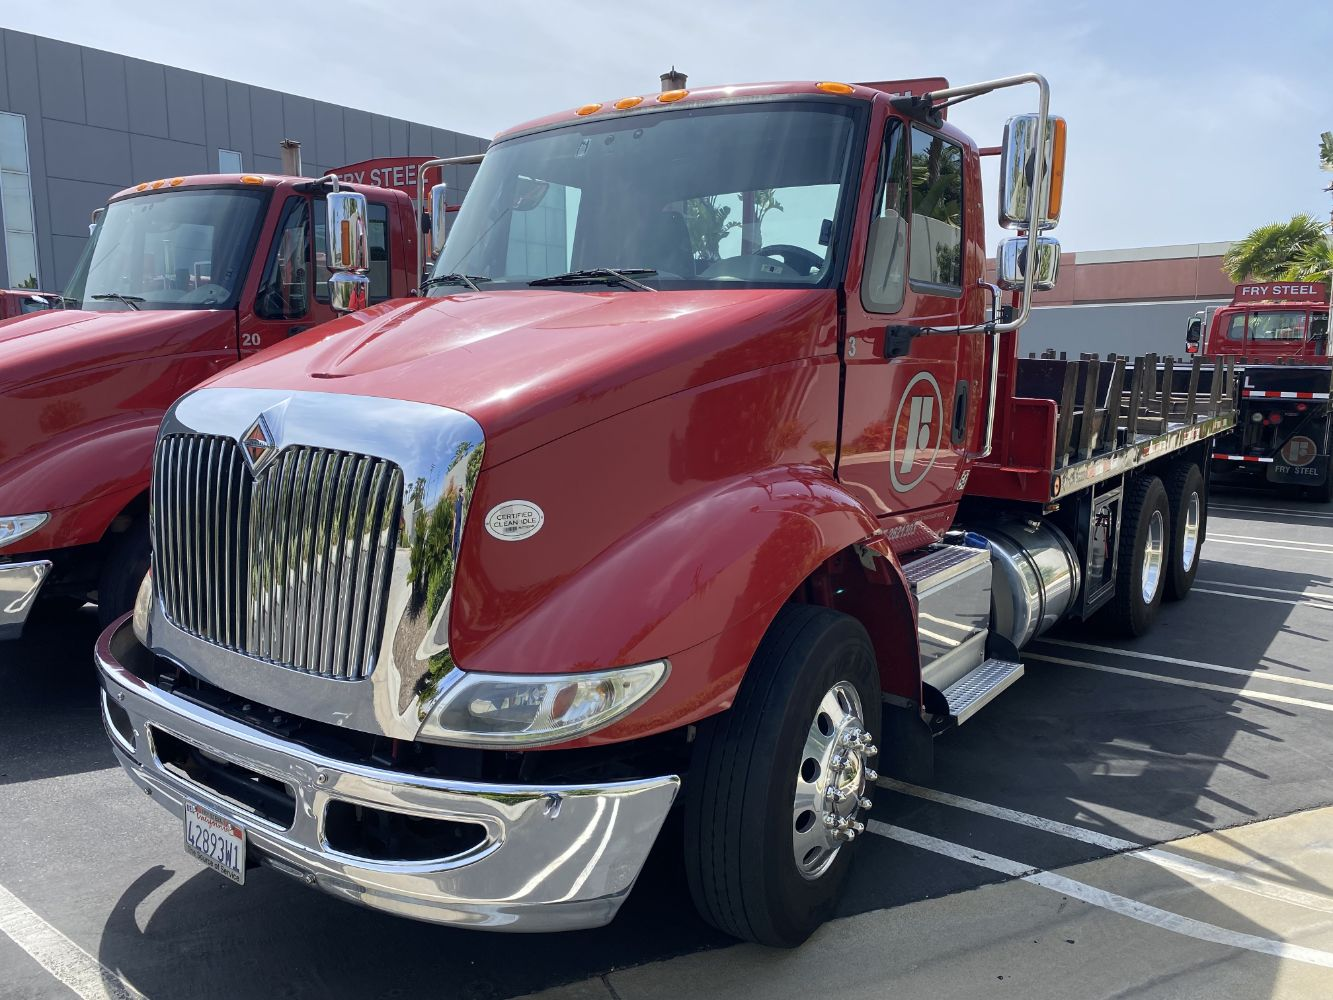 (7) Immaculate Condition - 2016 International Stake Bed Trucks